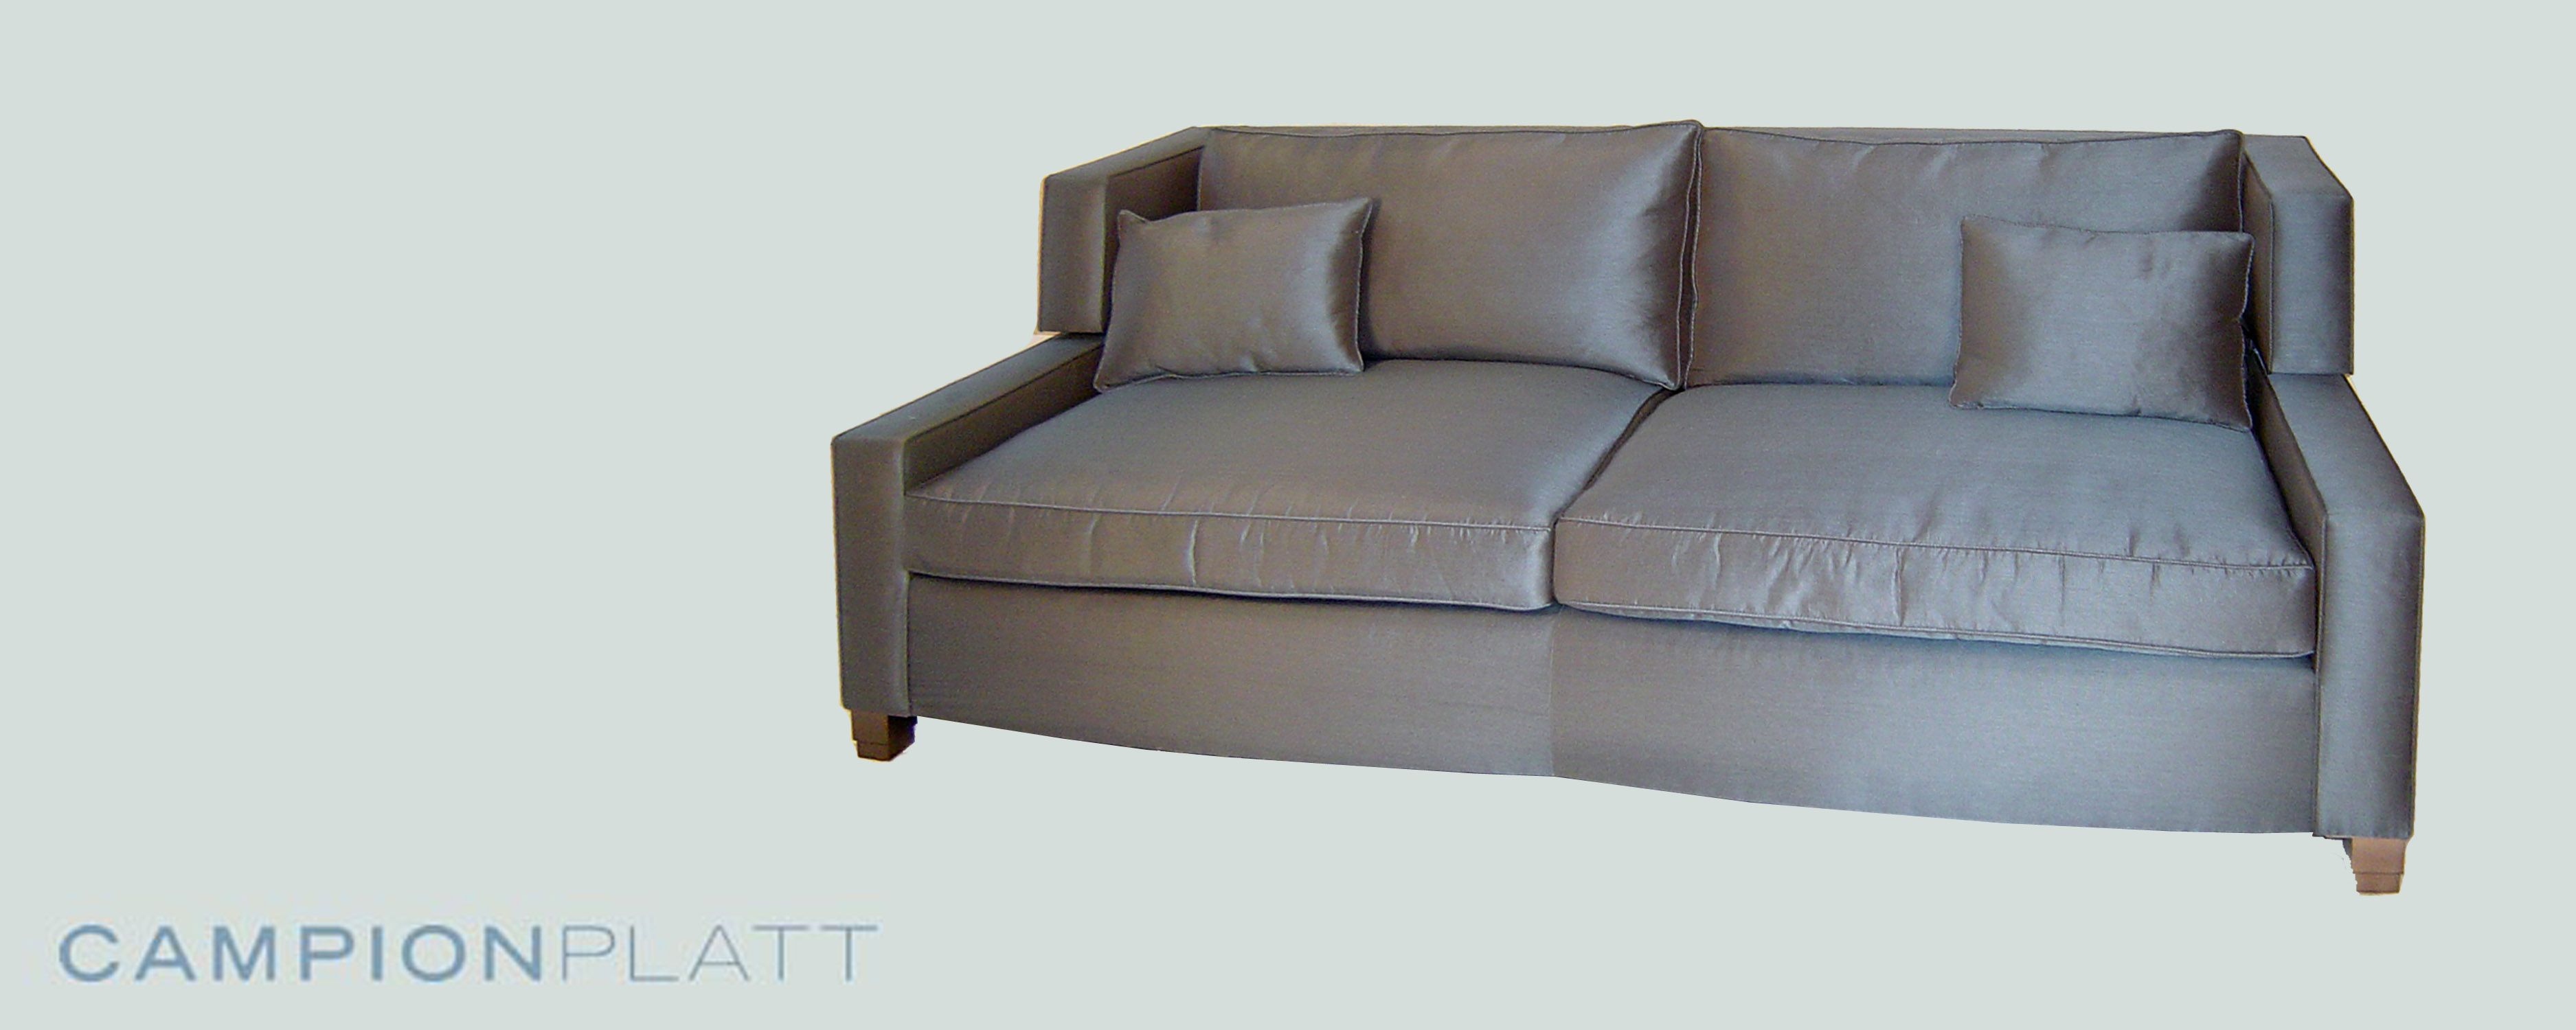 *Crystalline Collection: Sapphire Sofa* A corner backed low-slung sofa in luxurious ribbed blue silk with gunmetal feet